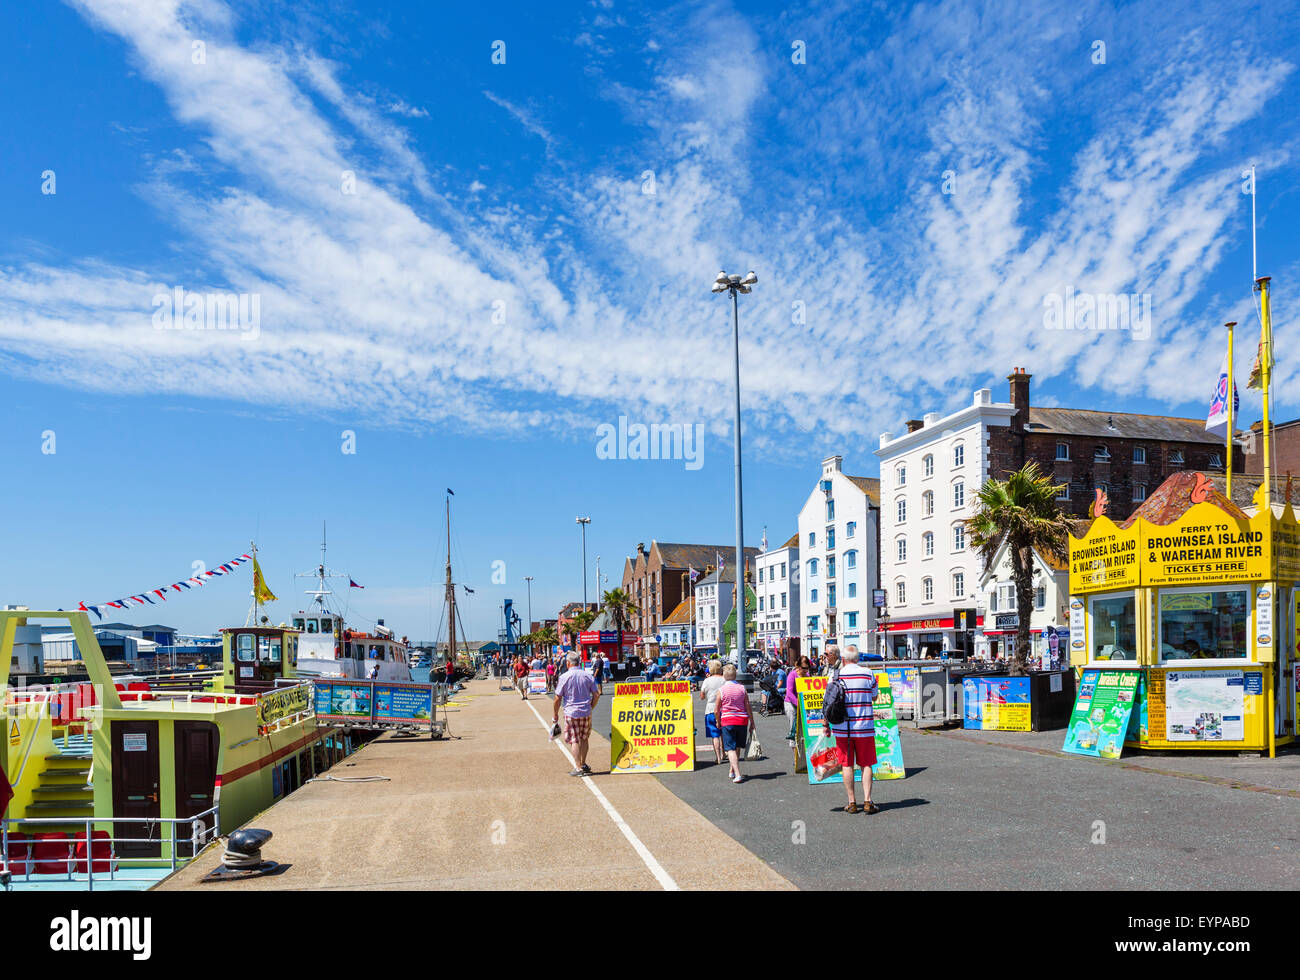 The Quay in Poole, Dorset, England, UK - Stock Image